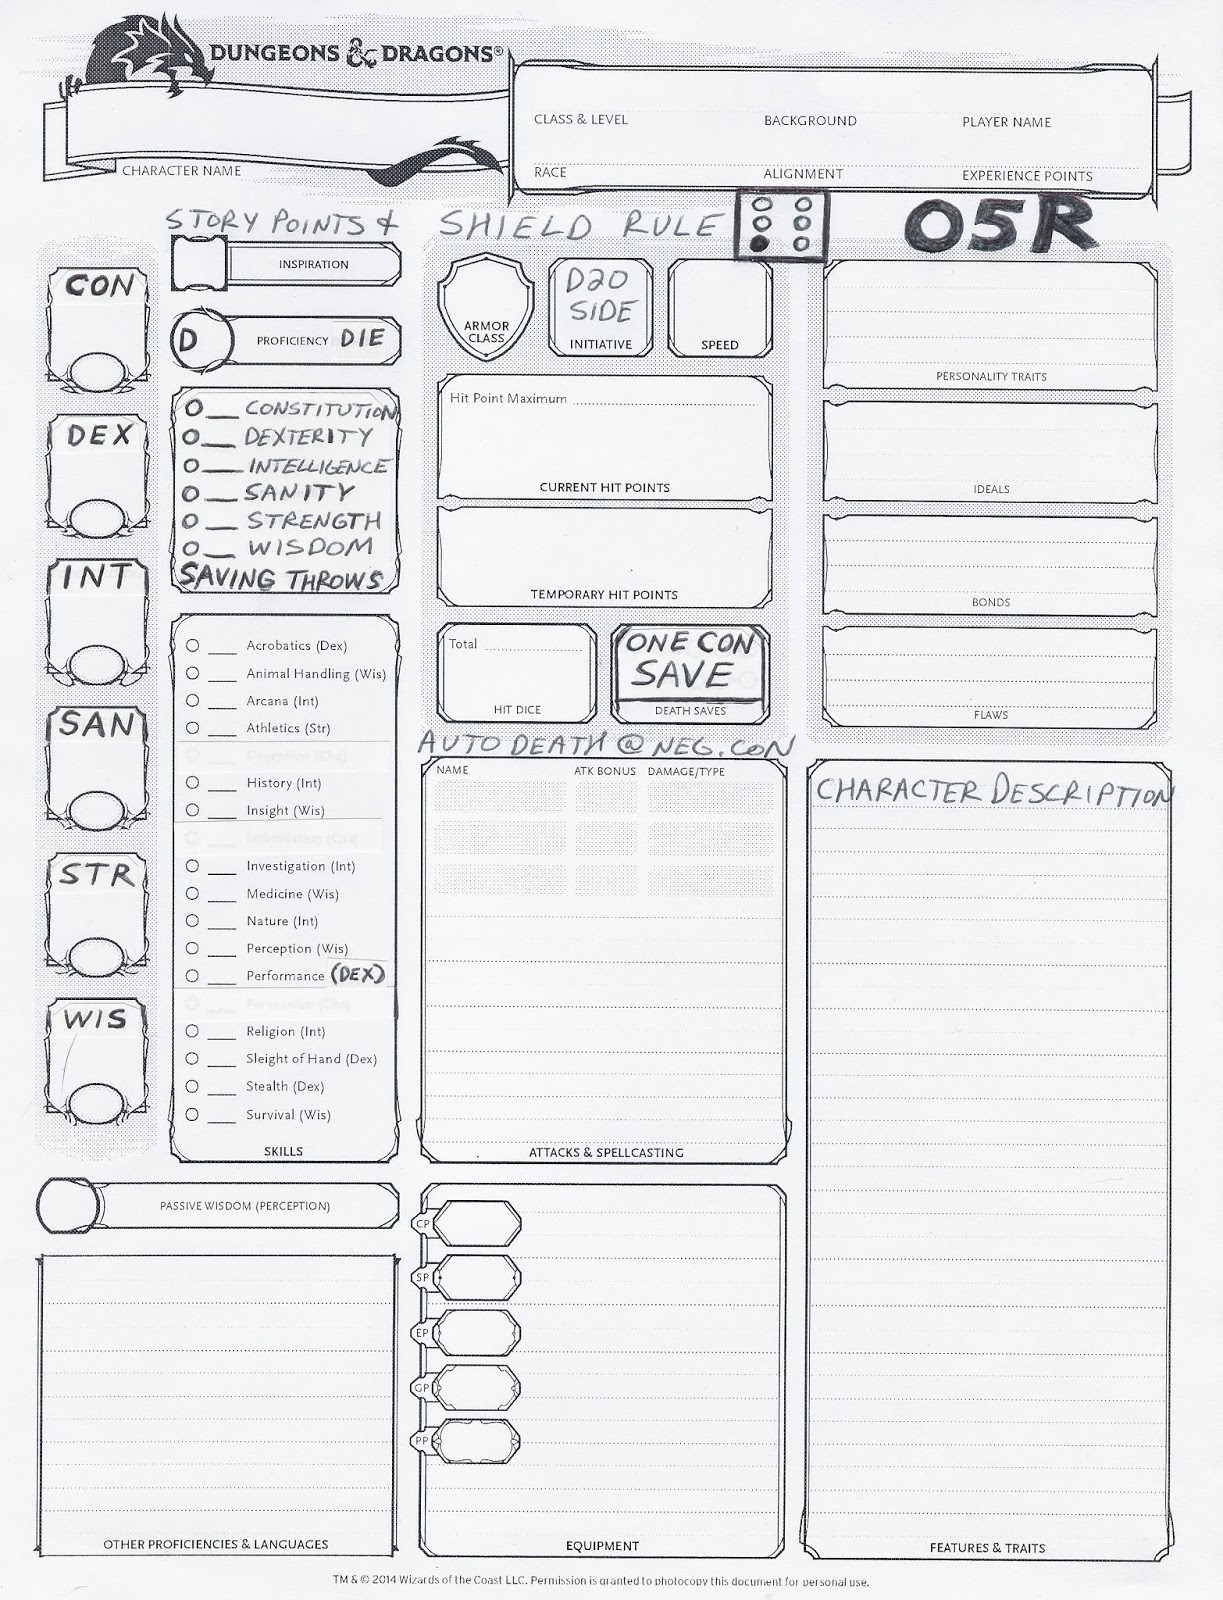 samwise7rpg o5r dungeons dragons character sheet incorporating optional house rules. Black Bedroom Furniture Sets. Home Design Ideas